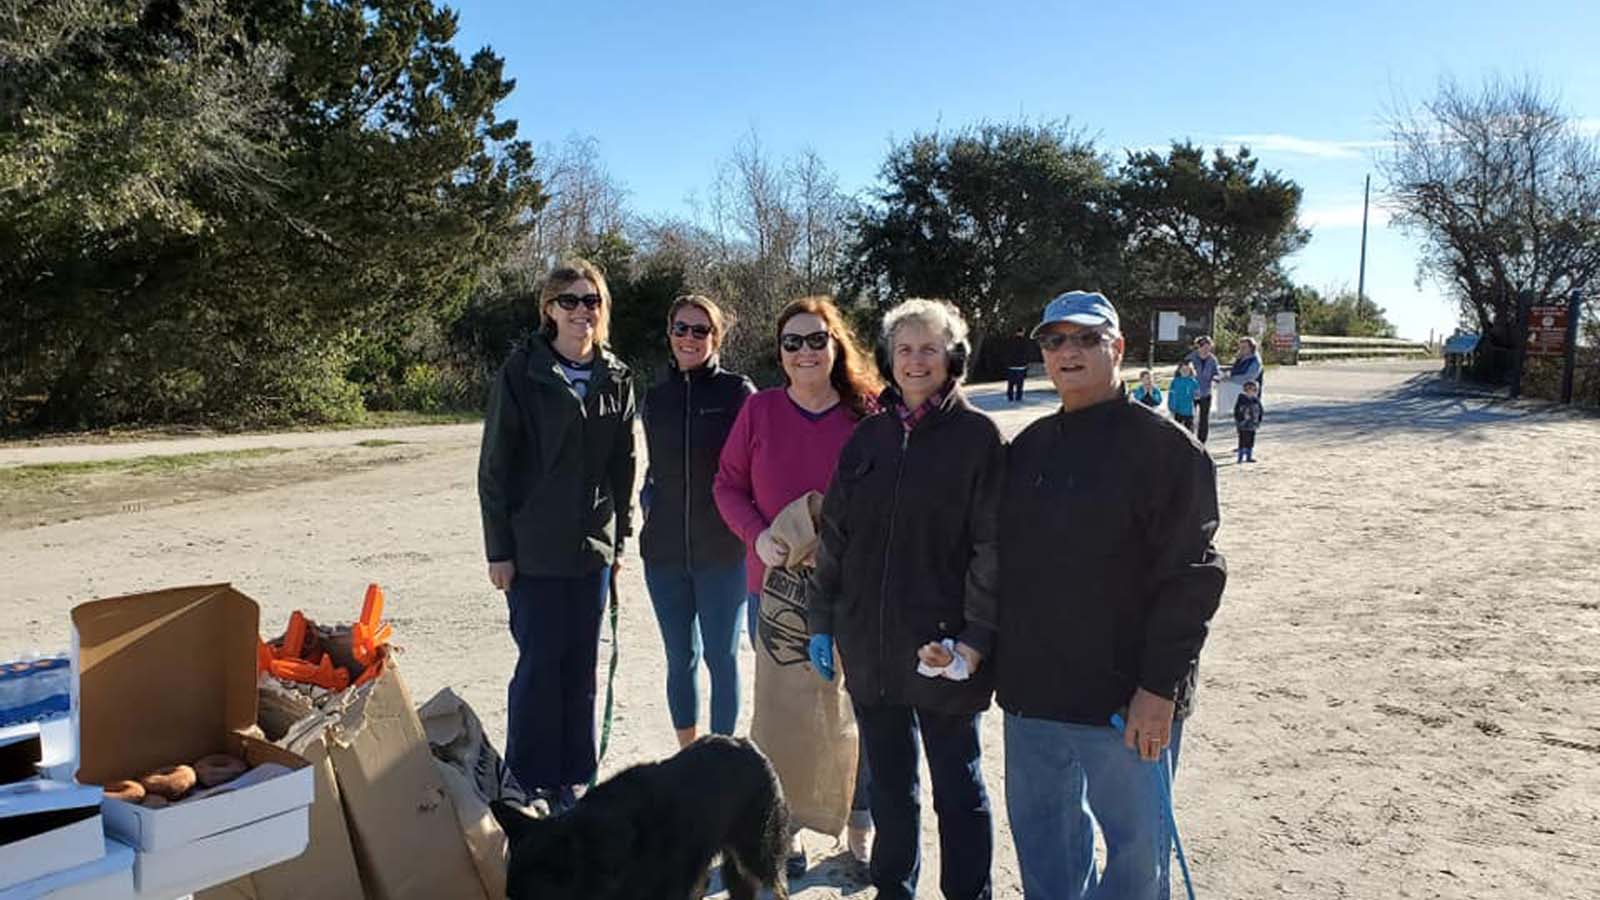 Keep Golden Isles Beautiful Rings in New Year with Beach Cleanup